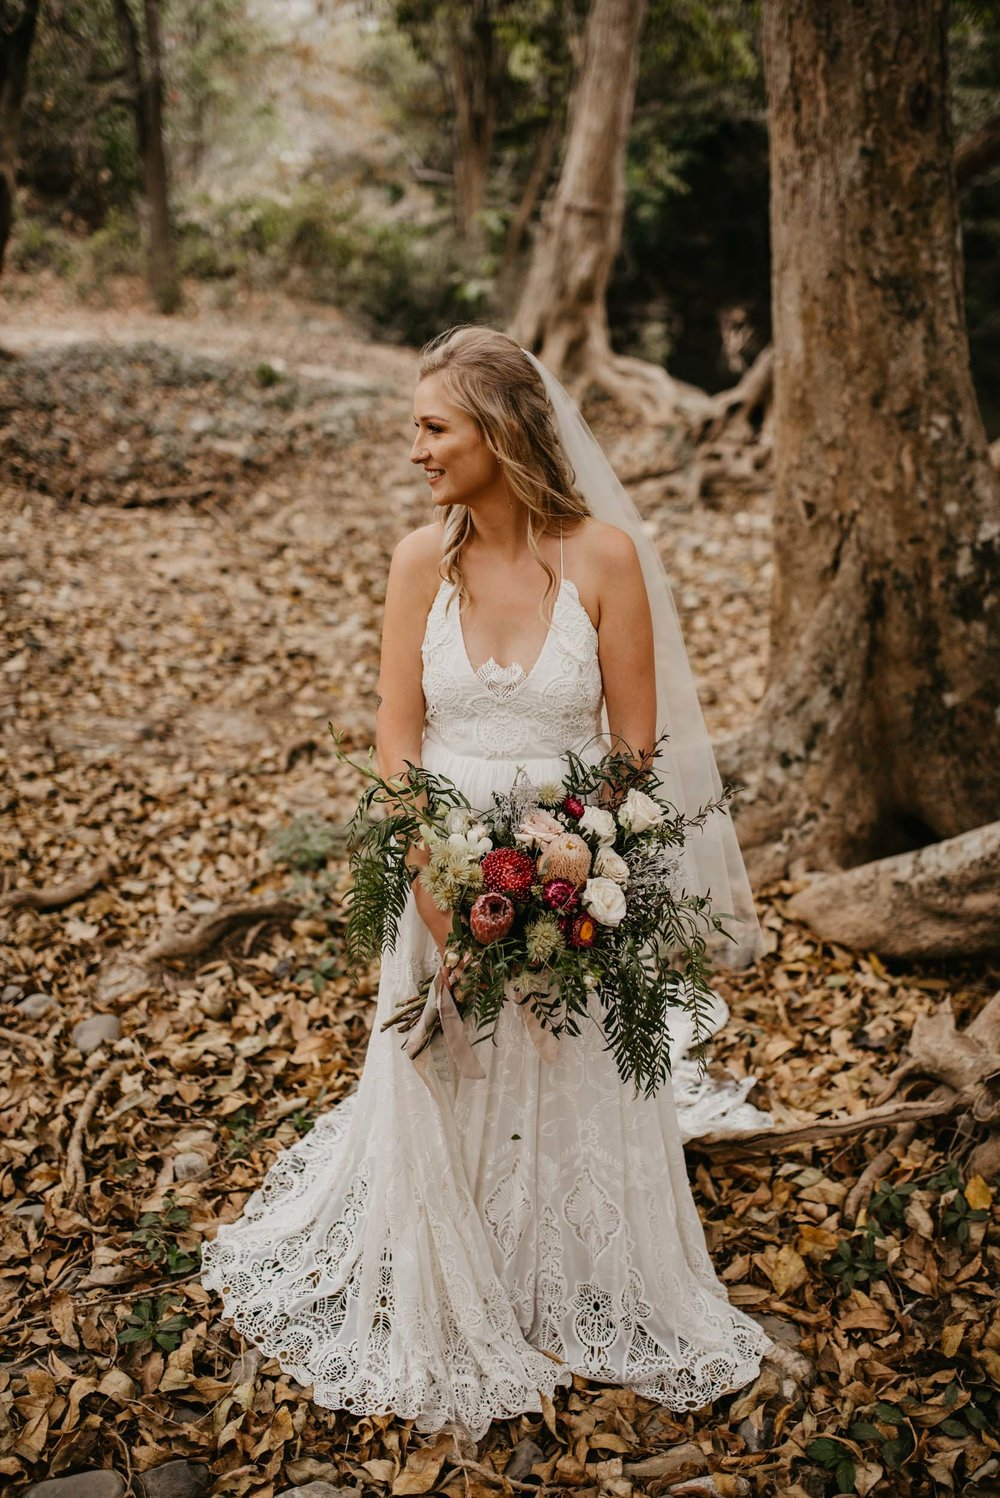 The Raw Photographer - Cairns Wedding Photographer - Laloli - Cairns Garden Wedding - Wedding Dress-54.jpg